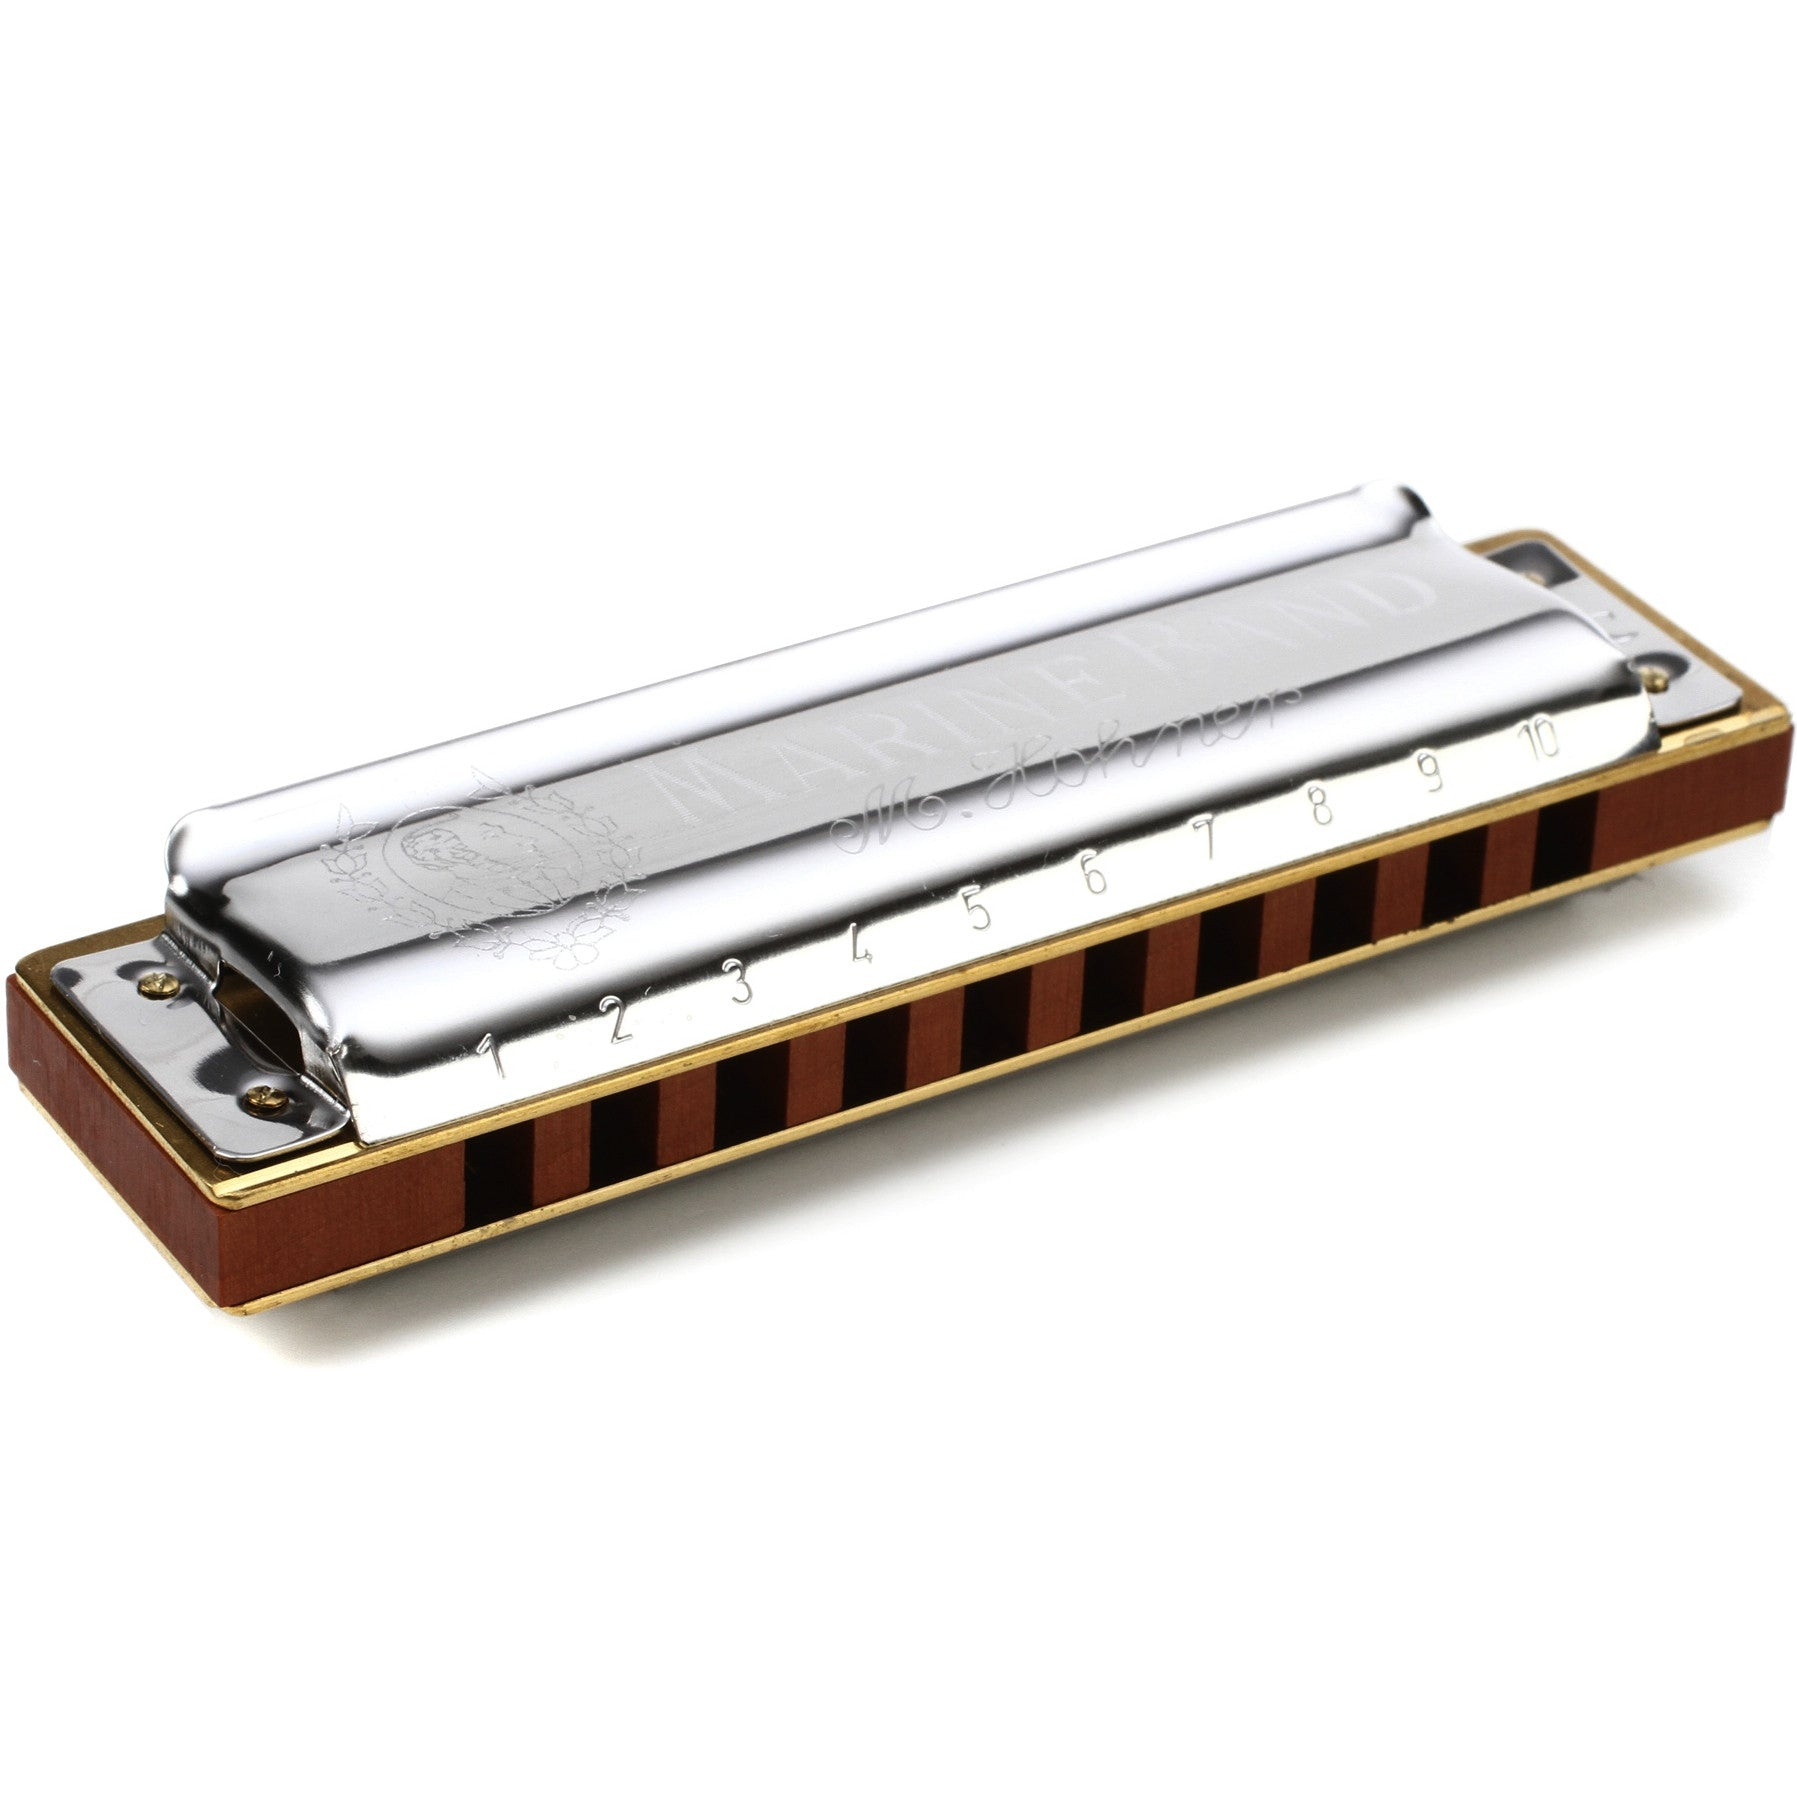 Hohner 2009 Marine Band Crossover Harmonica Key of A